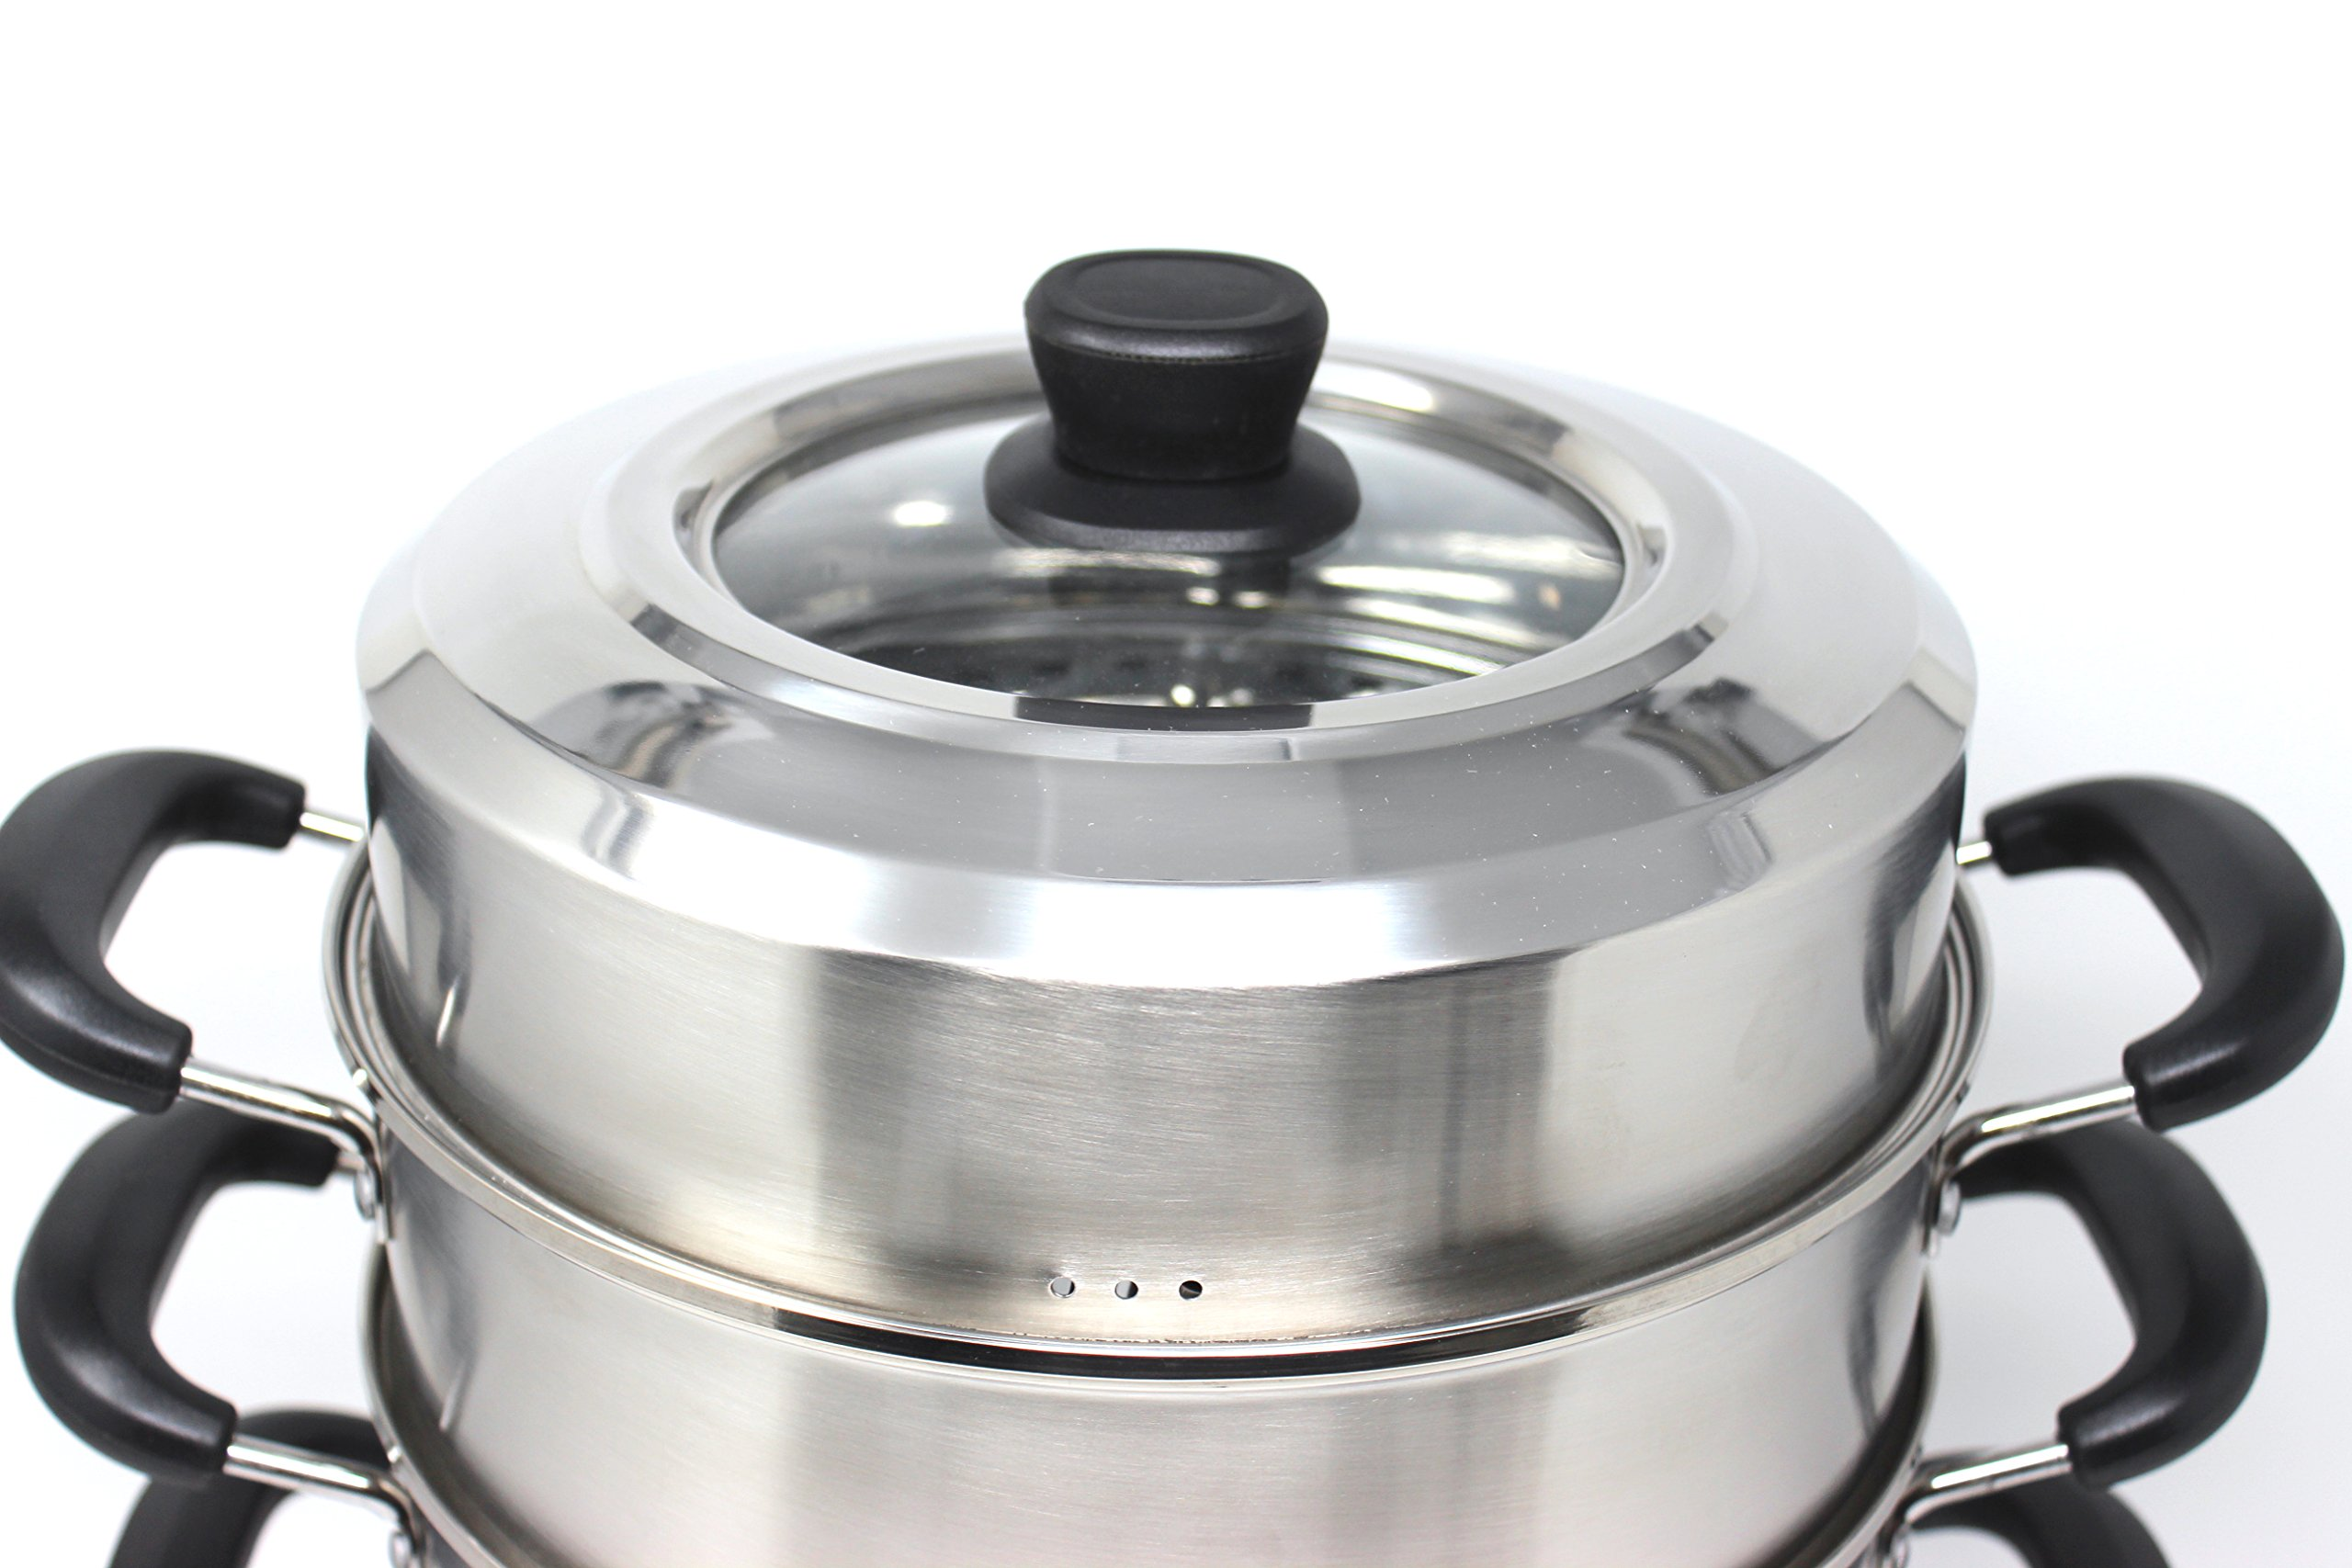 CONCORD 3 Tier Premium Stainless Steel Steamer Set (32 CM) by Concord Cookware (Image #3)